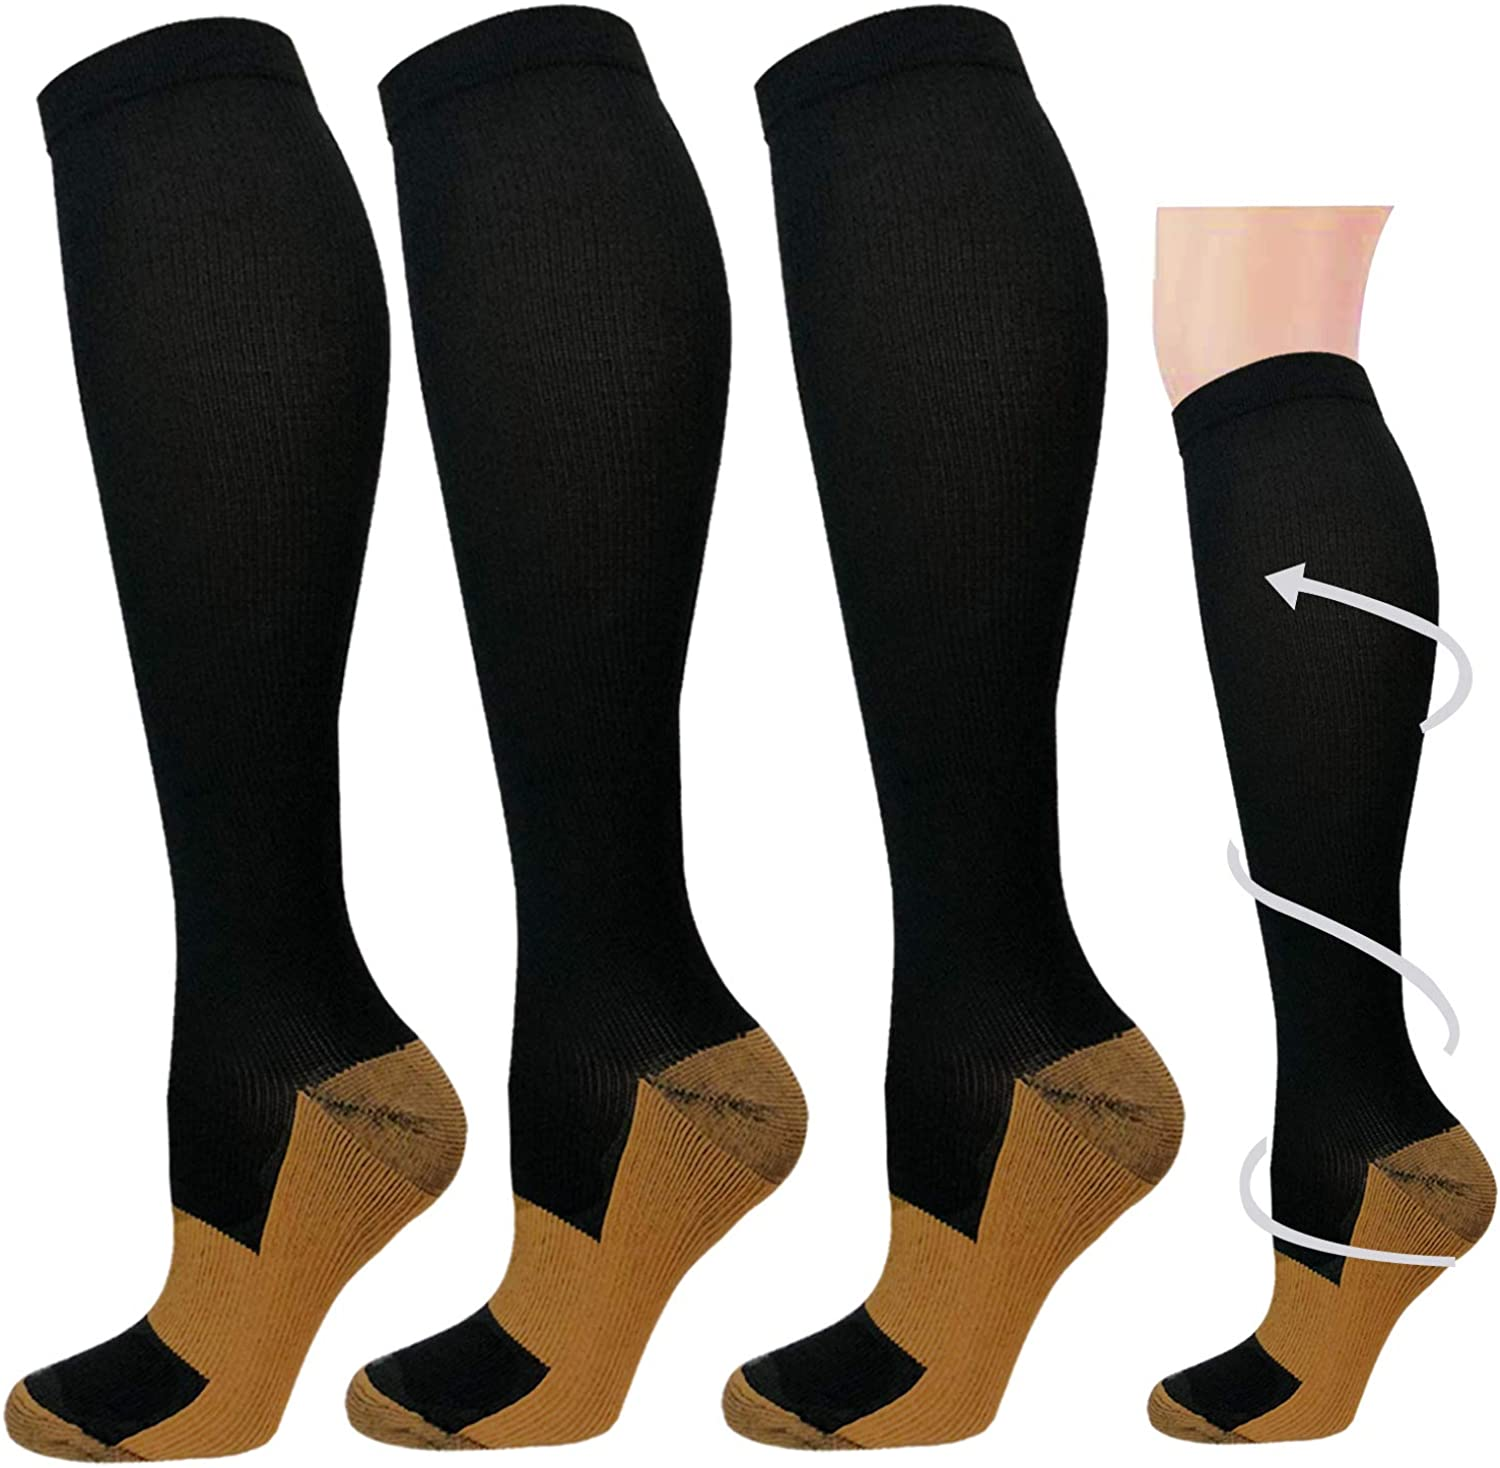 Graduated Medical Compression Socks for Women&Men 20-30mmhg Knee High Sock